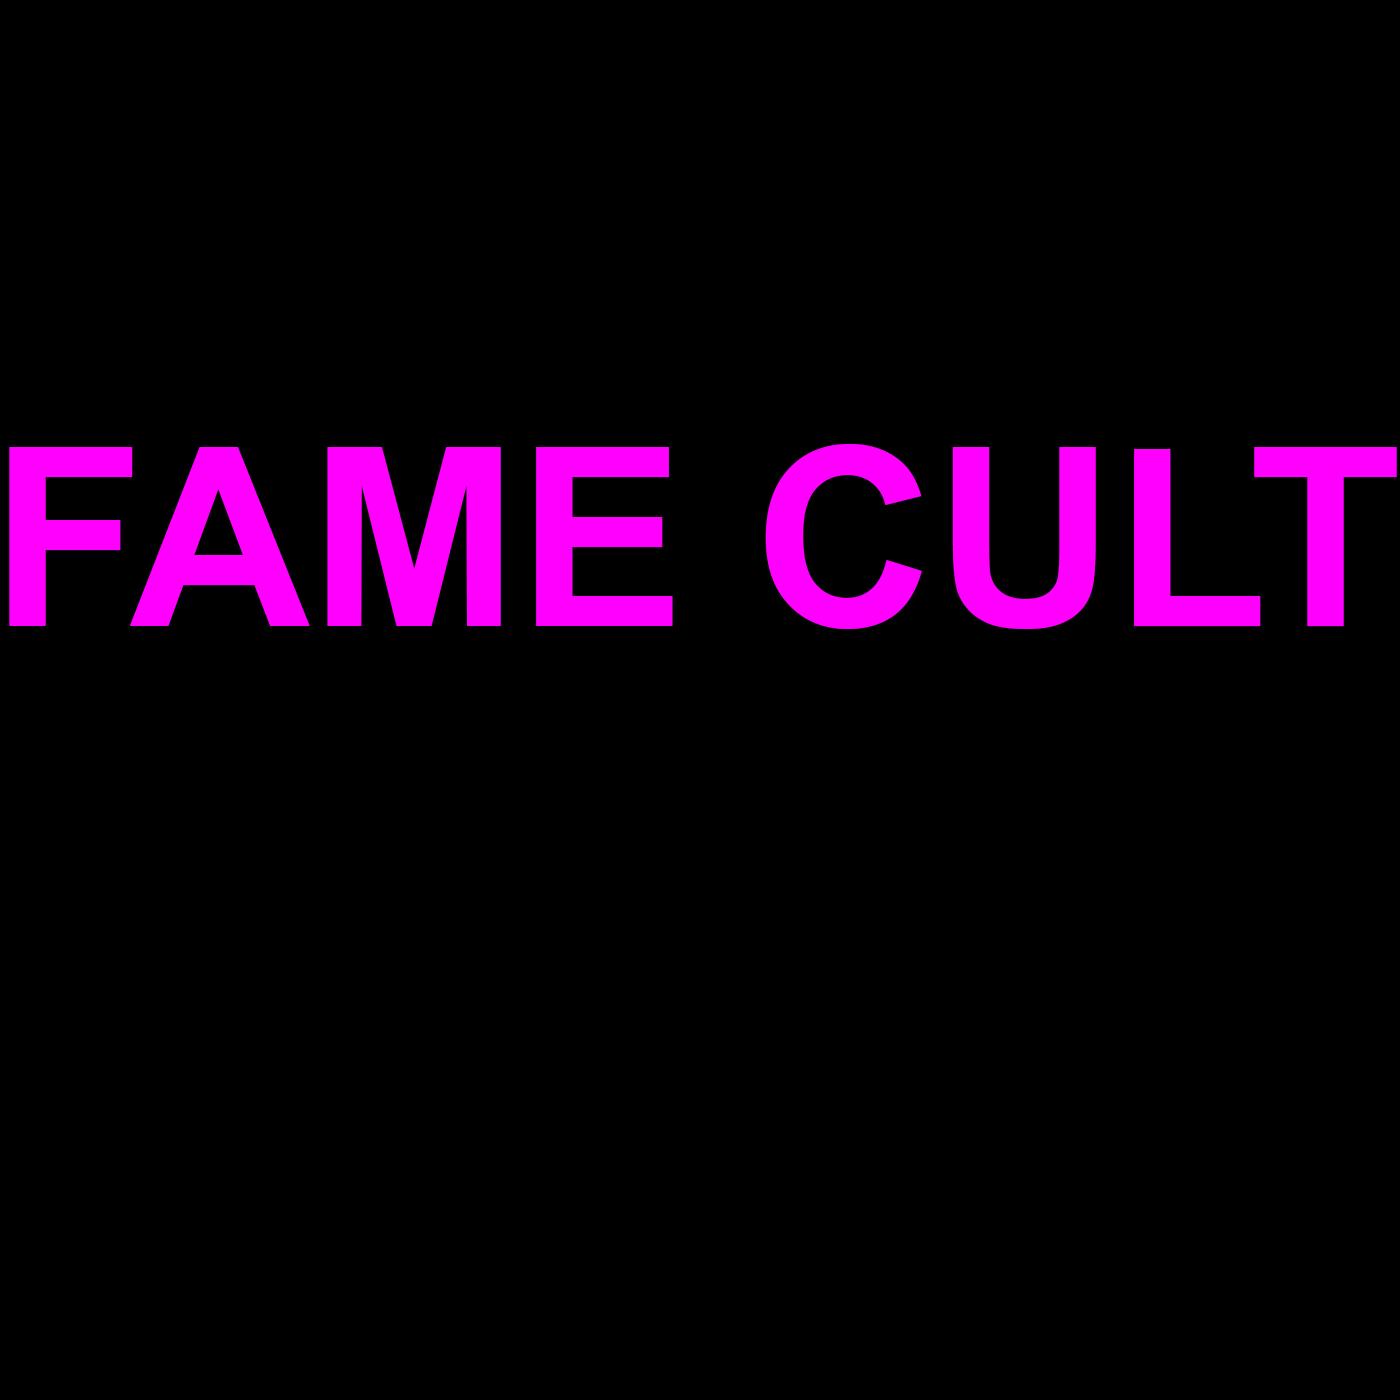 FAME CULT podcast